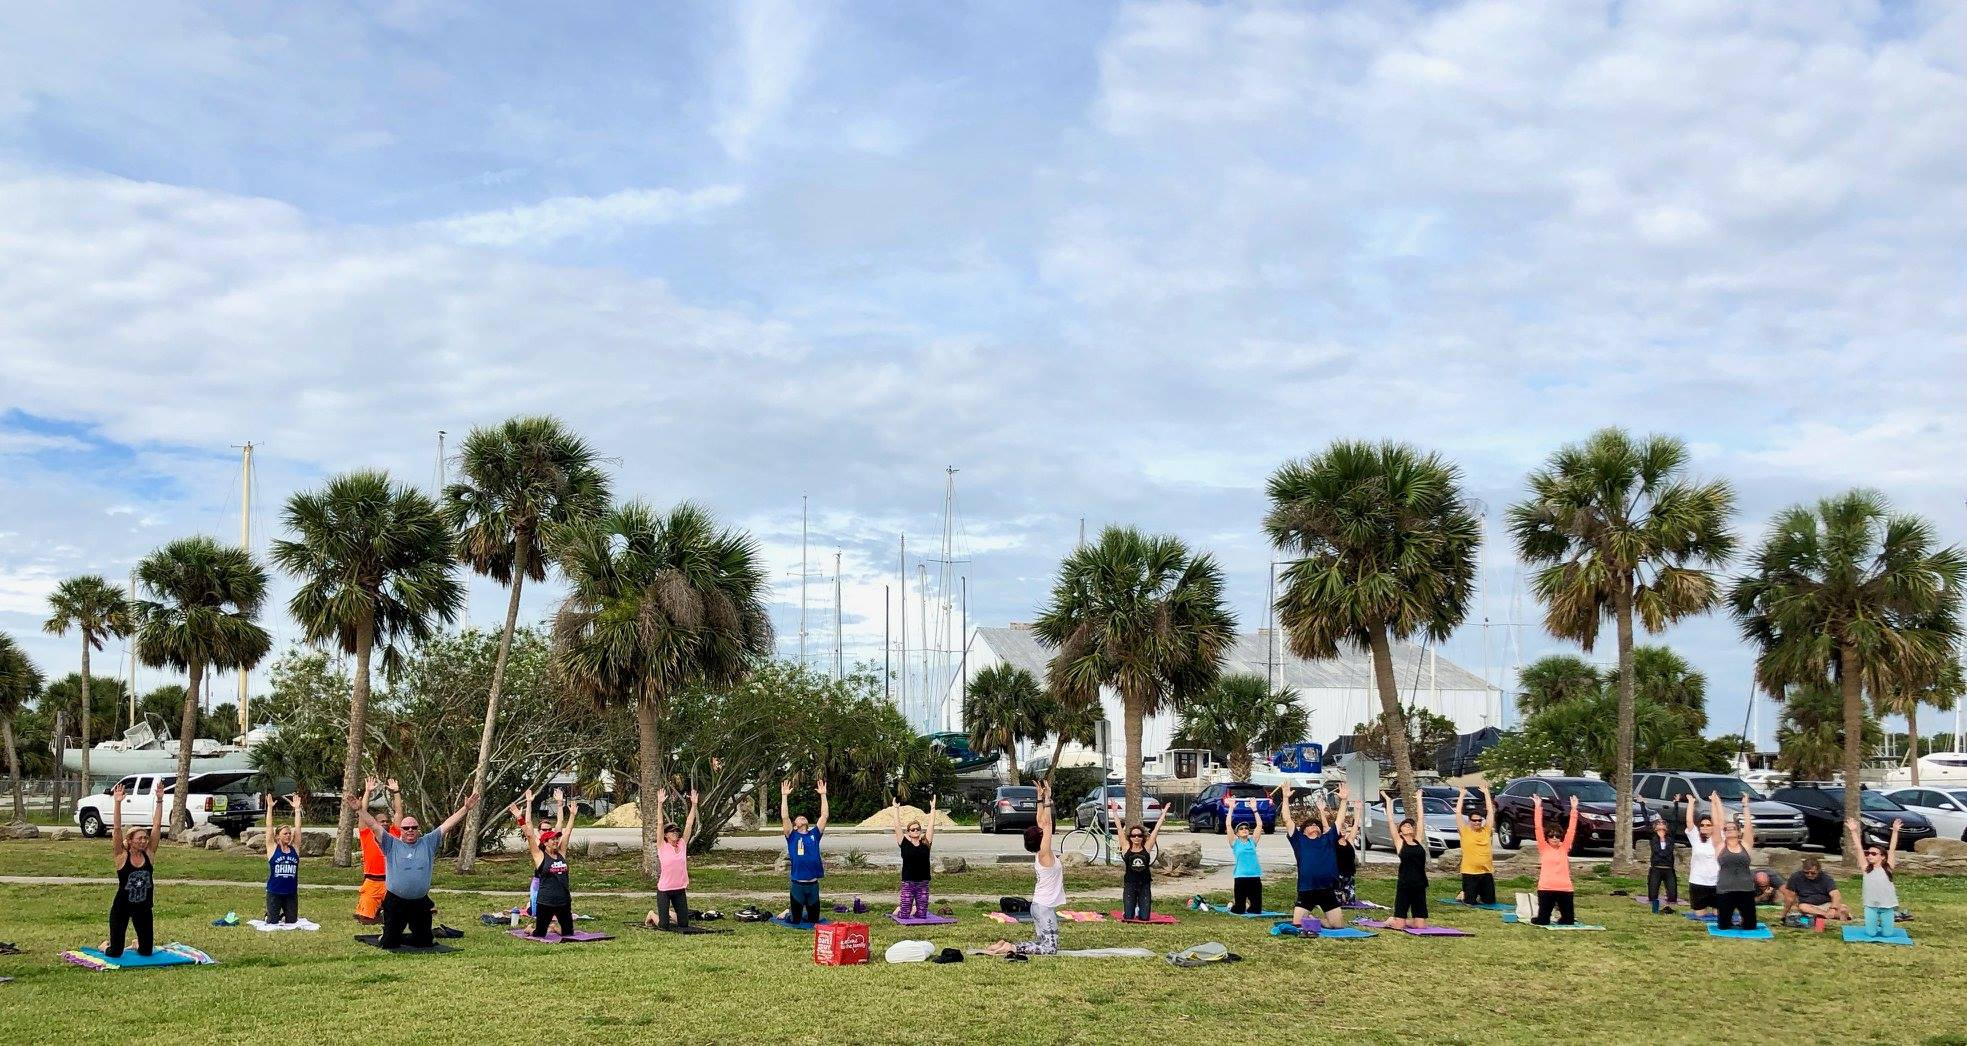 Titusville Yoga in the Park Sundays 9AM Sponsored by The Titusville Yoga Loft at Sand Point Park 101 N Washington Ave, Titusville, Florida 7.jpg